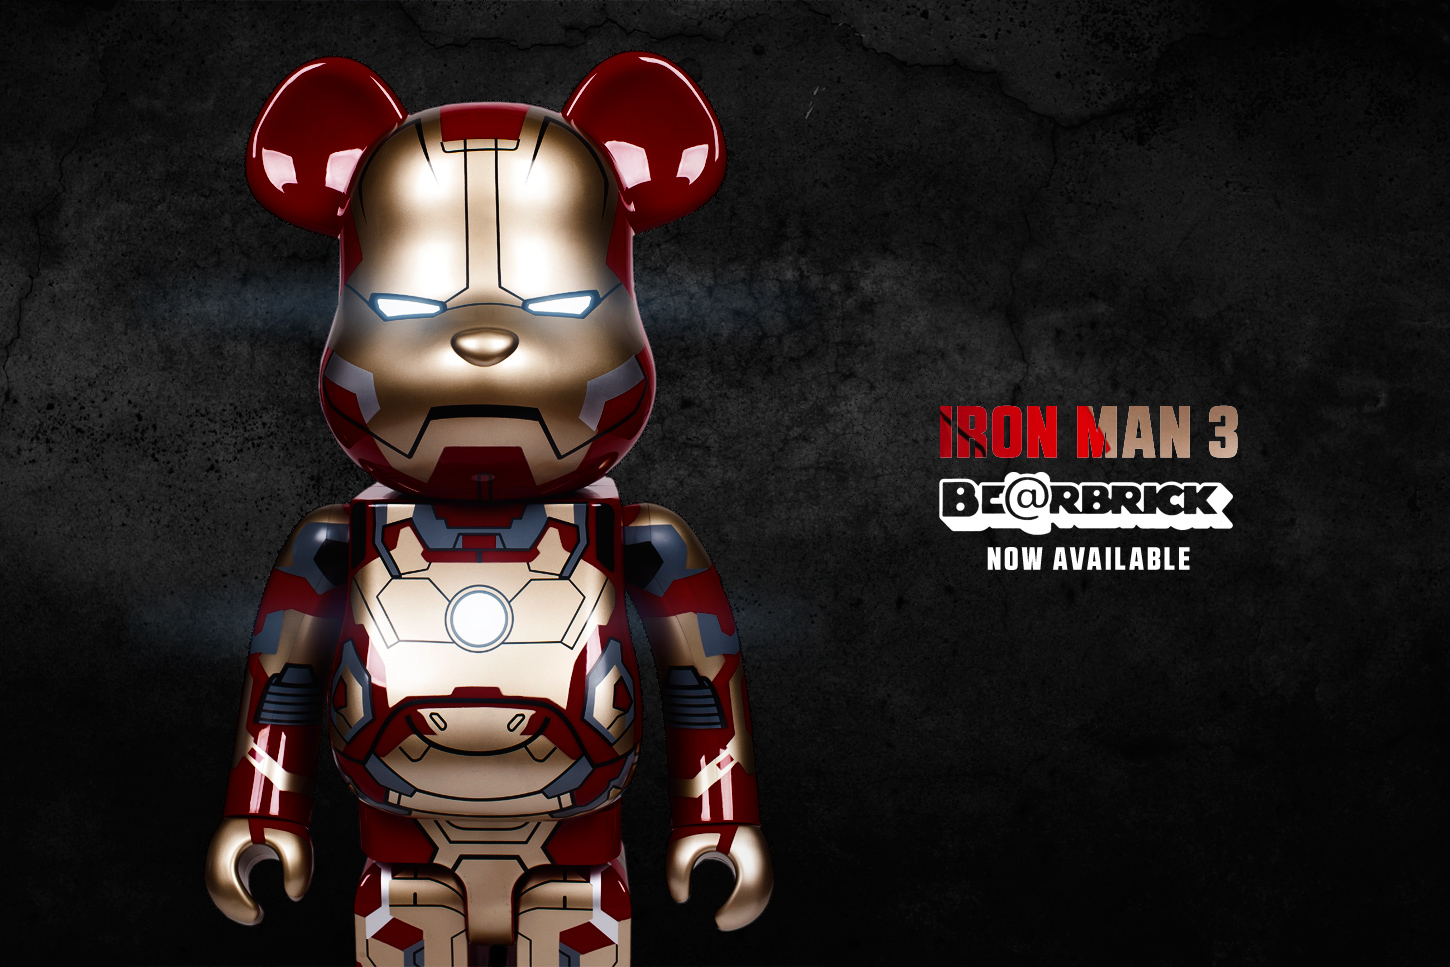 1be6122a Iron Man 3 Bearbrick now available – Fatlace™ Since 1999